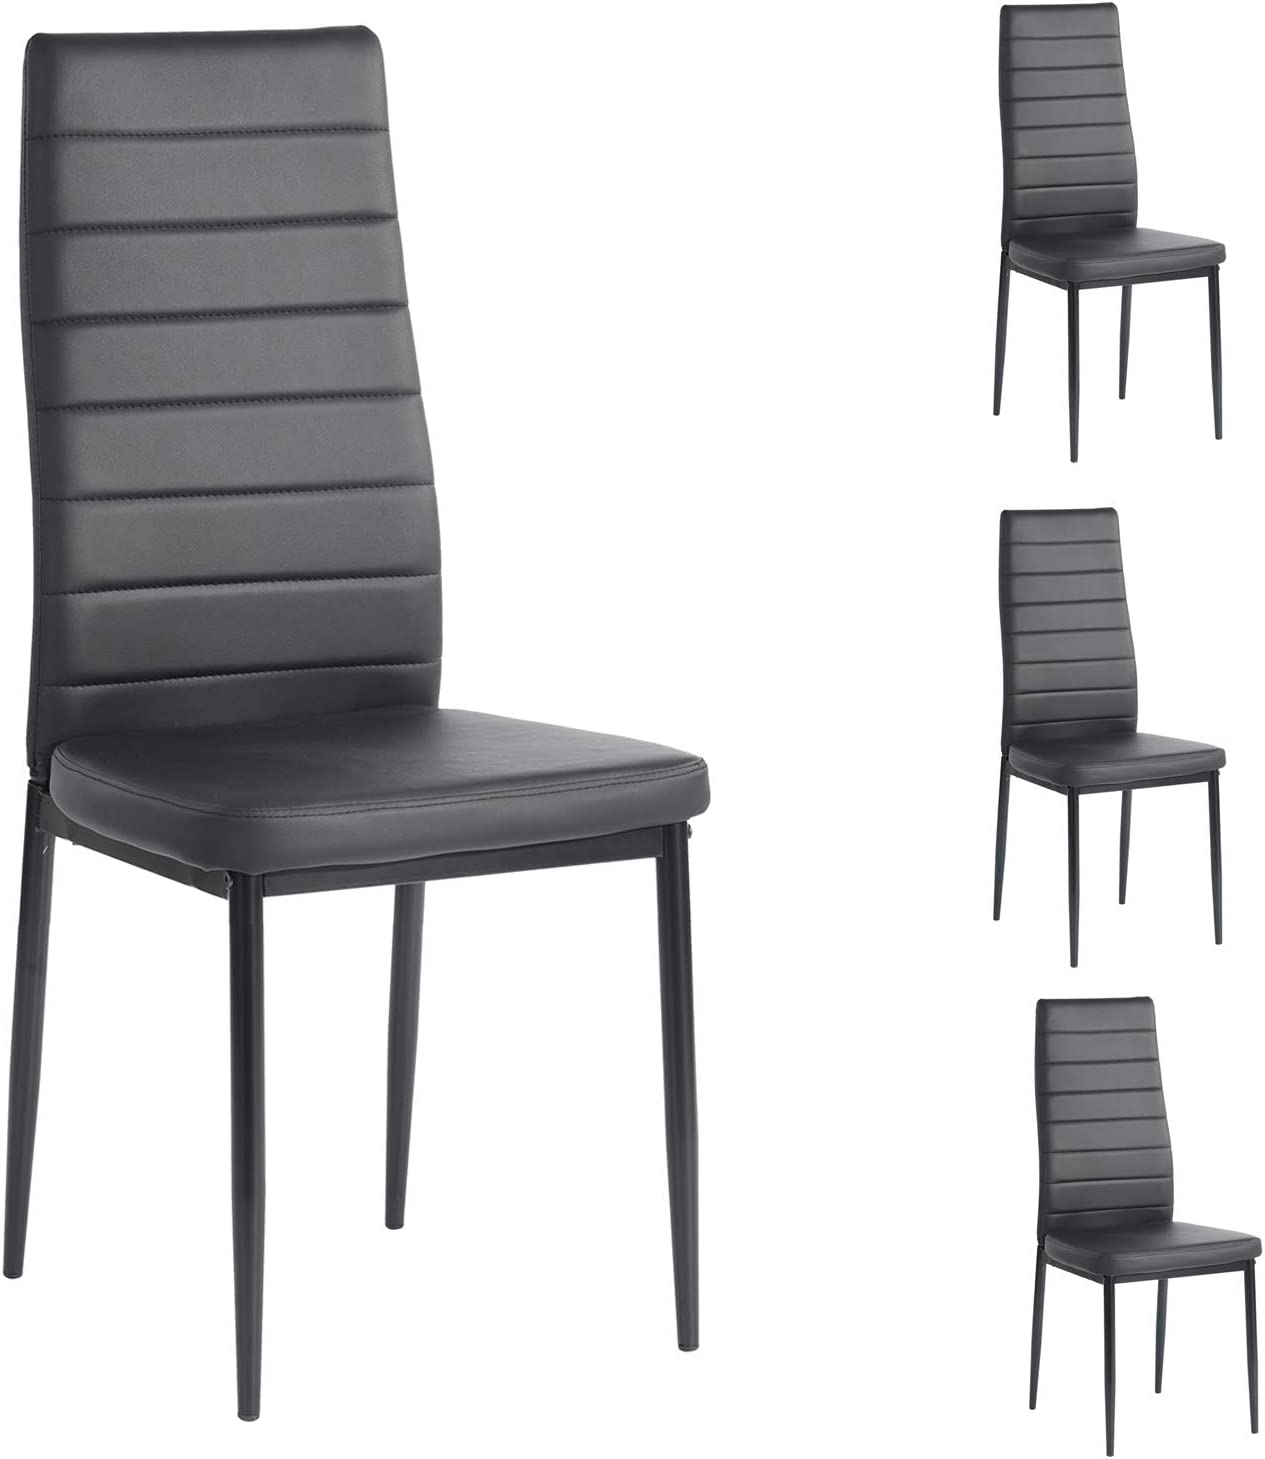 HouseInBox Leather Dining Chairs, Modern PU Side Chair with Metal Feet Back Support, for Dining Room Set of 4 (Black)